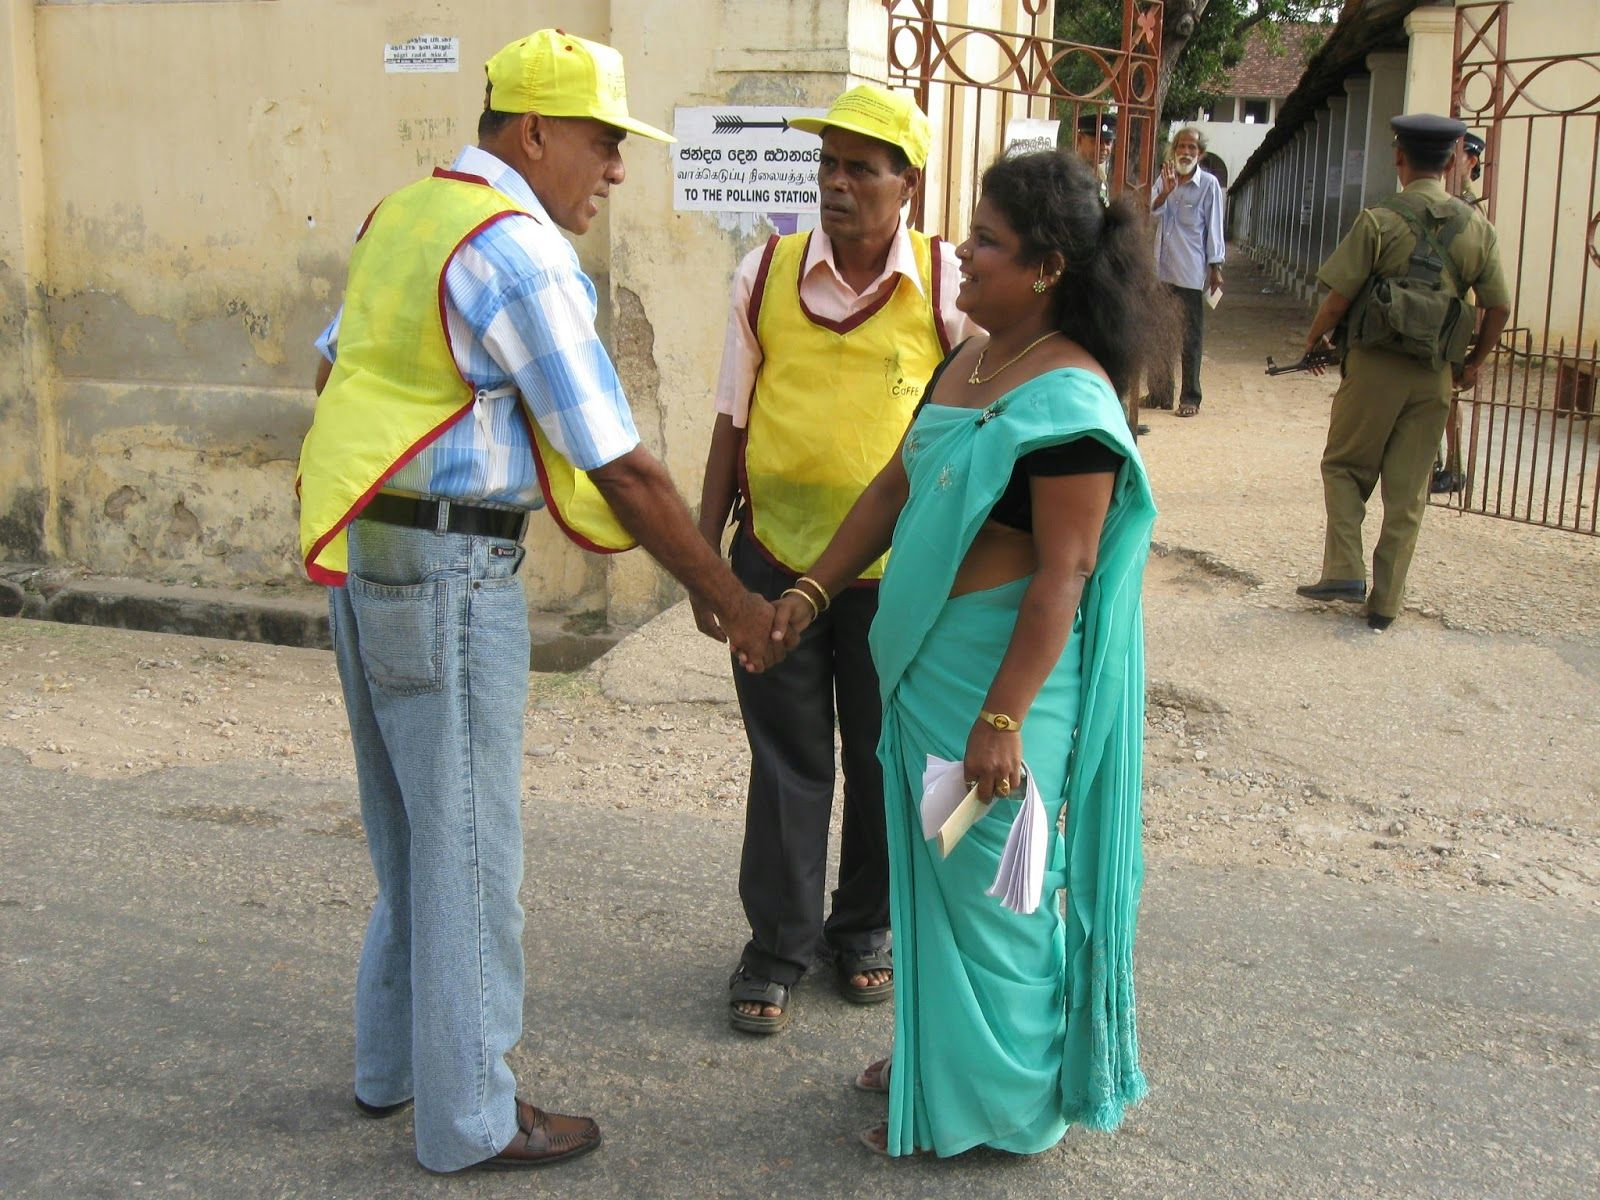 Domestic election monitors at a polling booth during 2009 elections in Sri Lanka / USAID